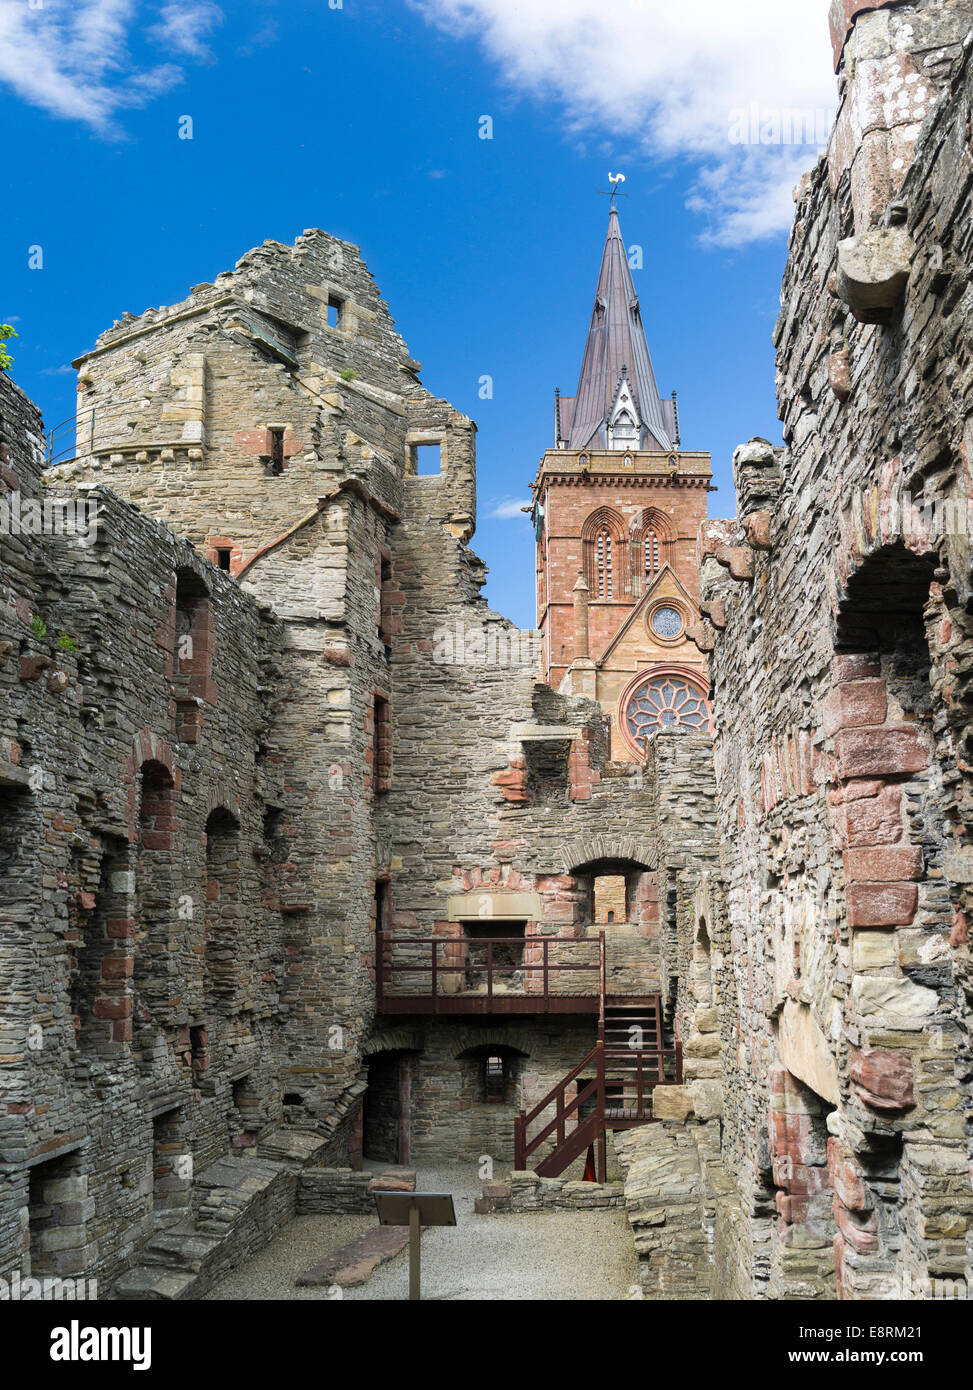 Bishop's Palace, built in the 12th century, St. Magnus Cathedral in the background, Kirkwall, Orkney islands, - Stock Image